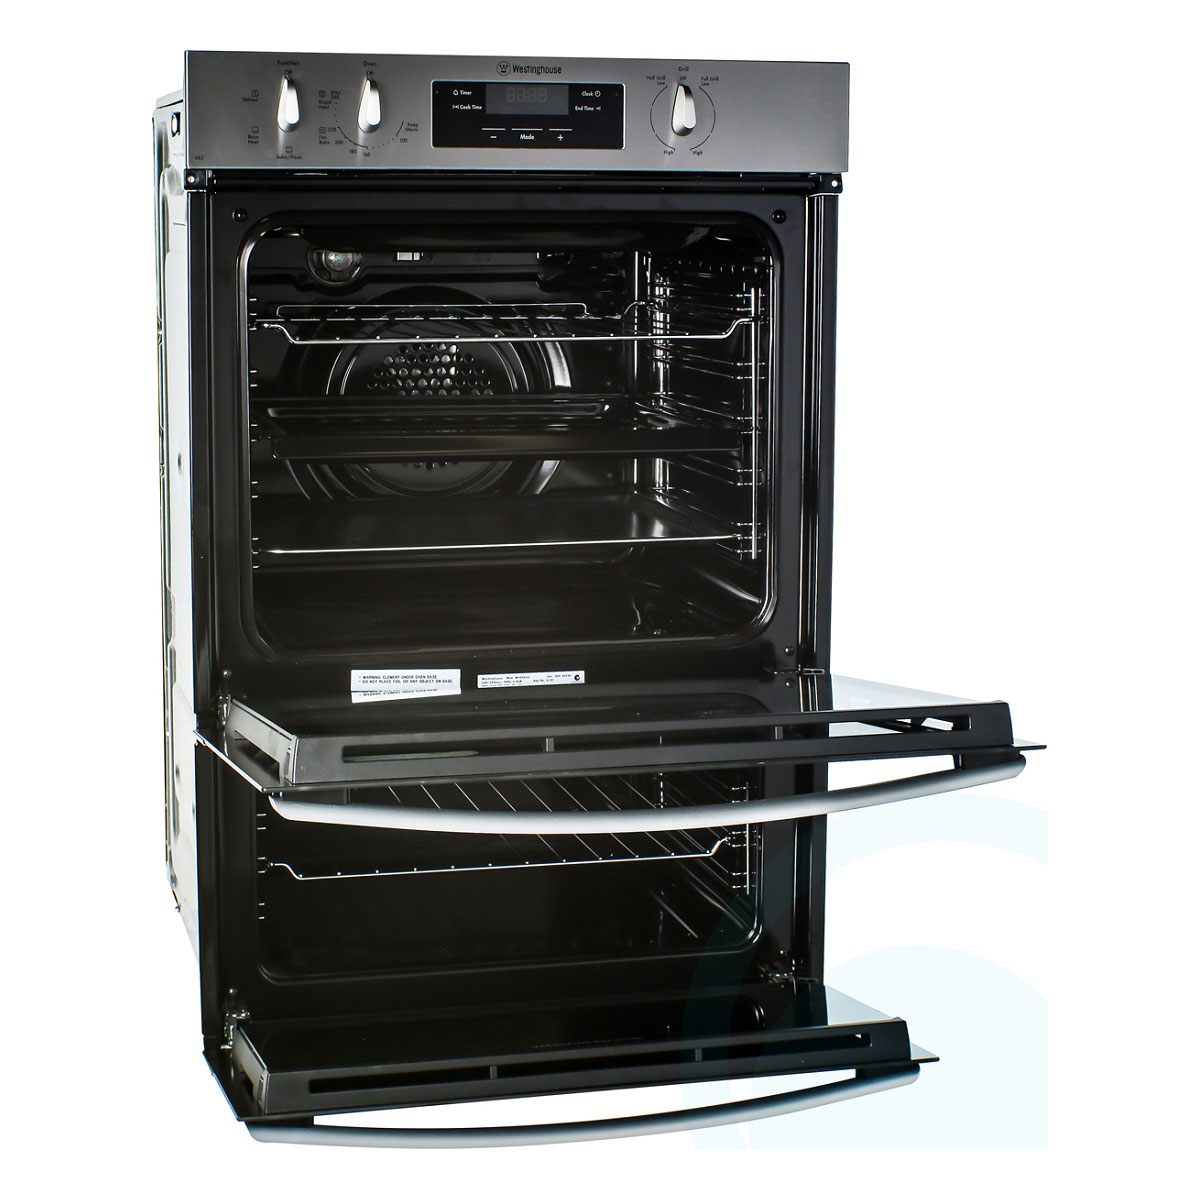 Westinghouse WVE665S Built-In Oven 27012